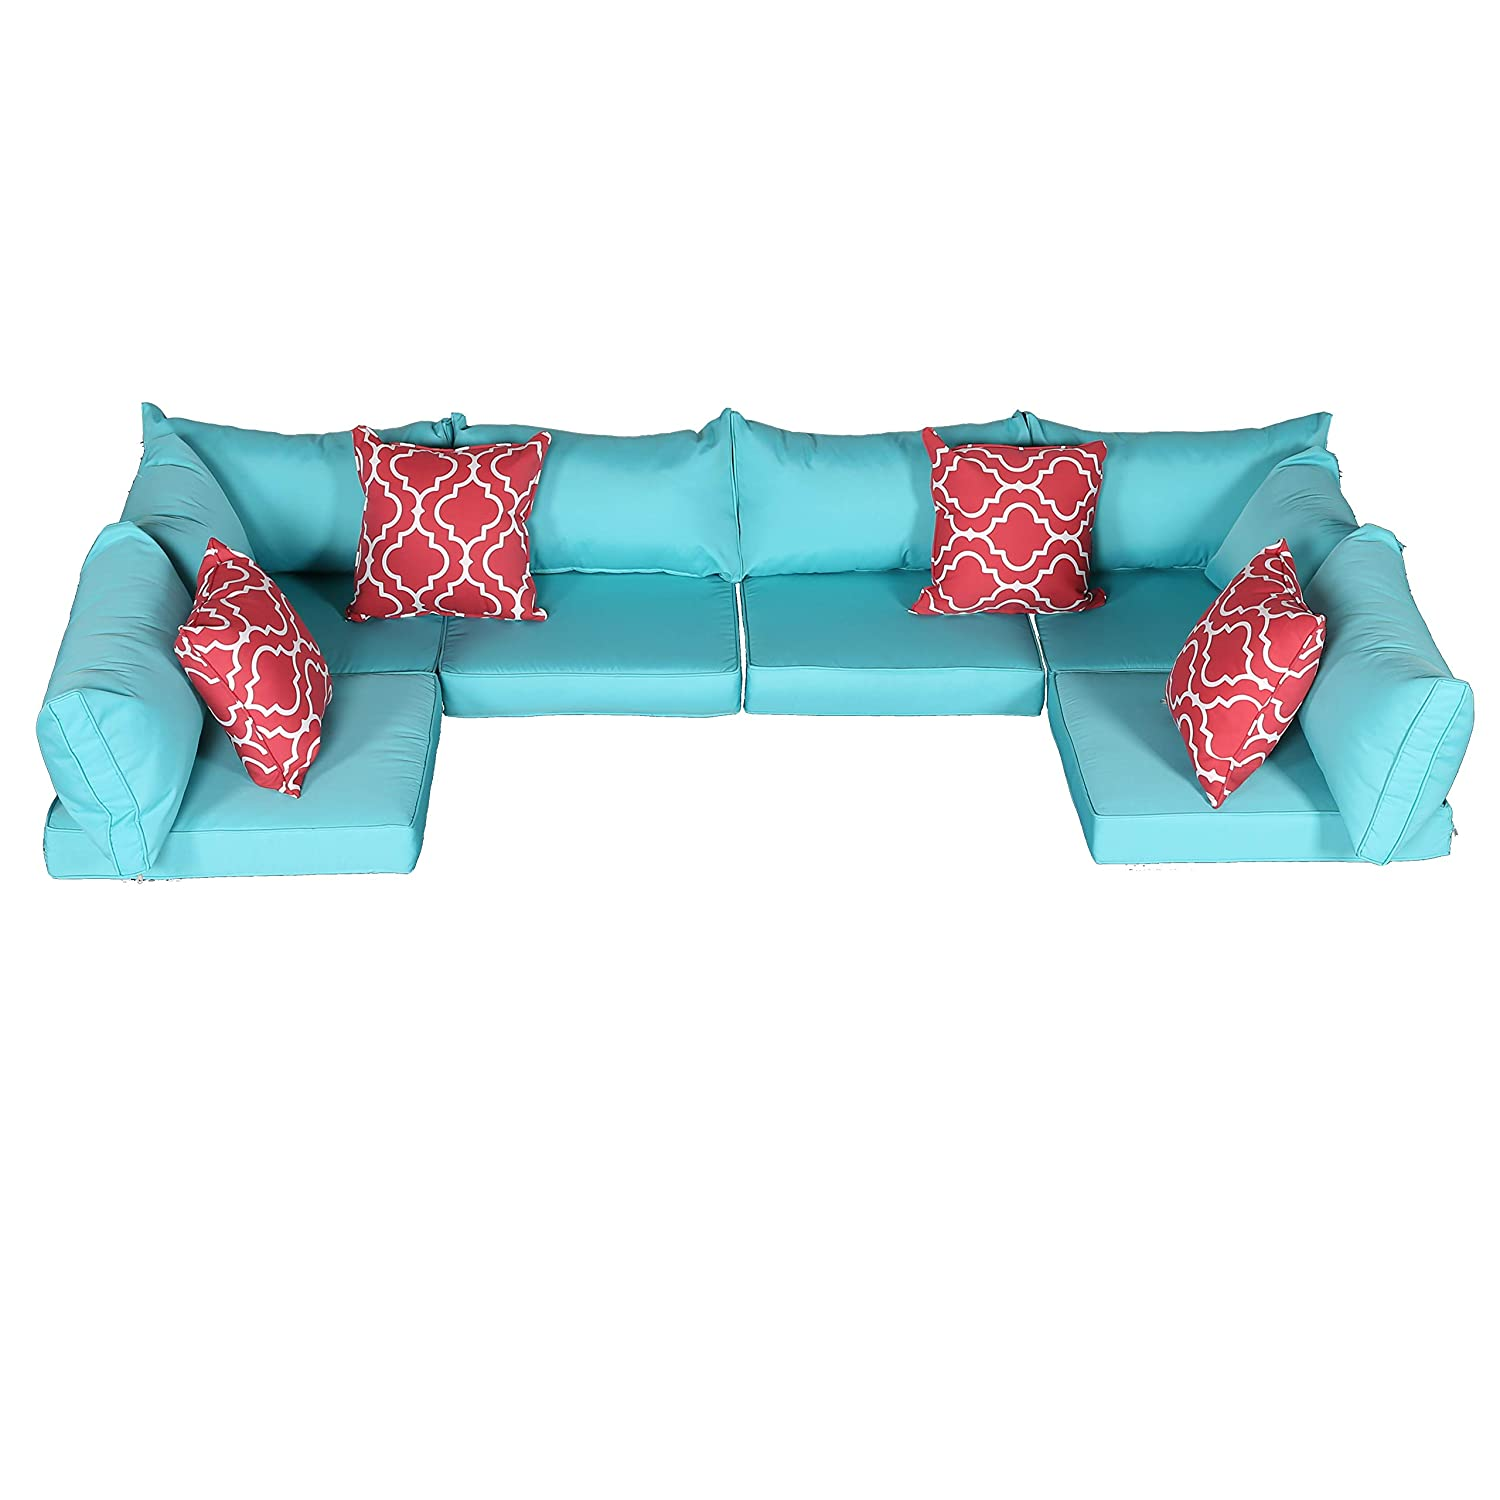 Do4U Patio Furniture Cover Water Resistant Outdoor Furniture Sets Cushion Cover Set with 2 Corner 4 Middle Sectionals Back Seat Cushion Covers Turquoise-14 Pieces